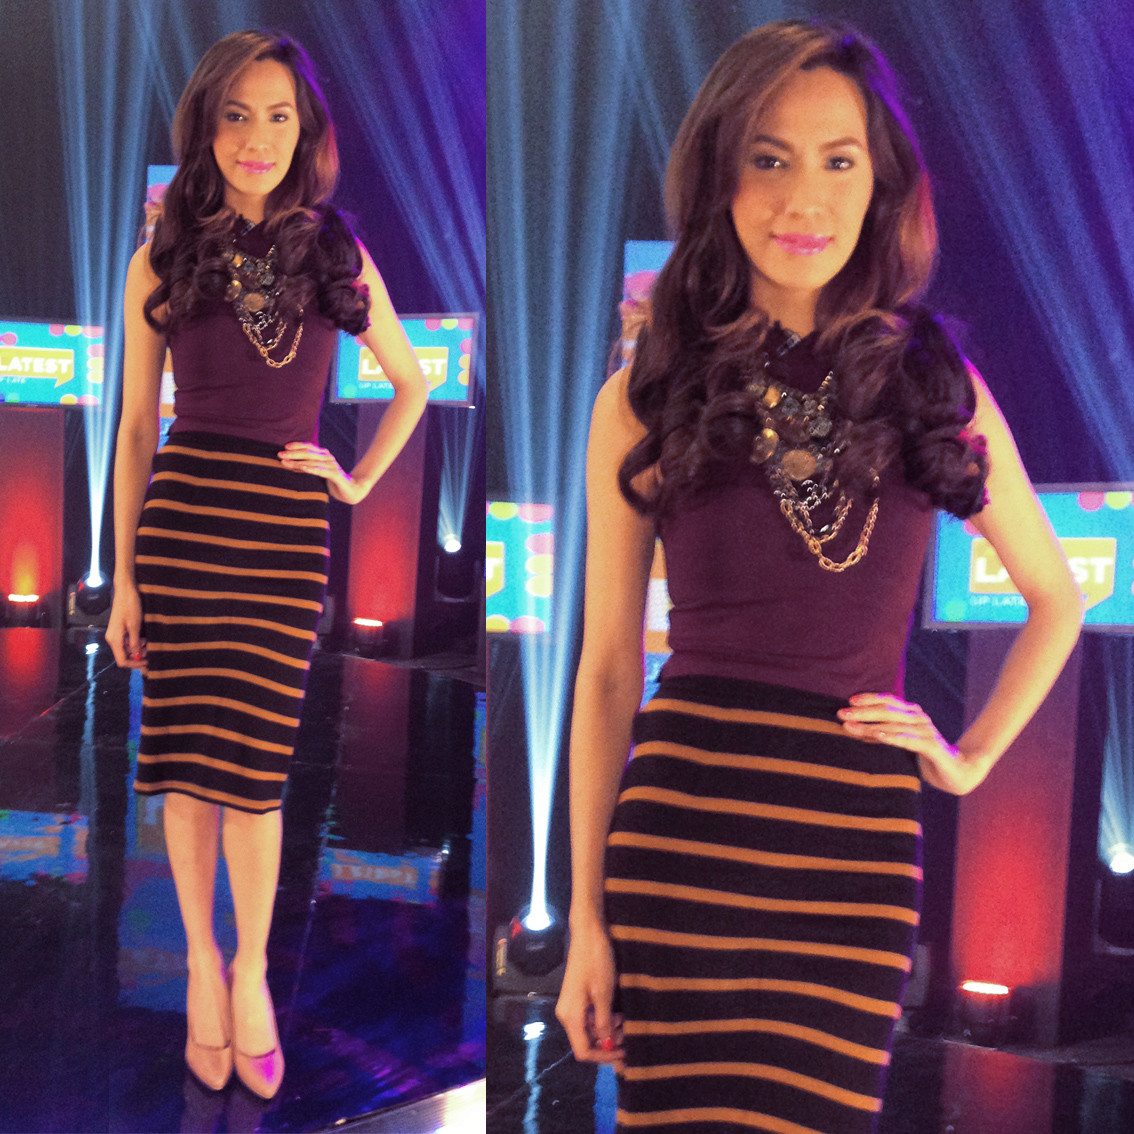 D in stripes for Ang Latest